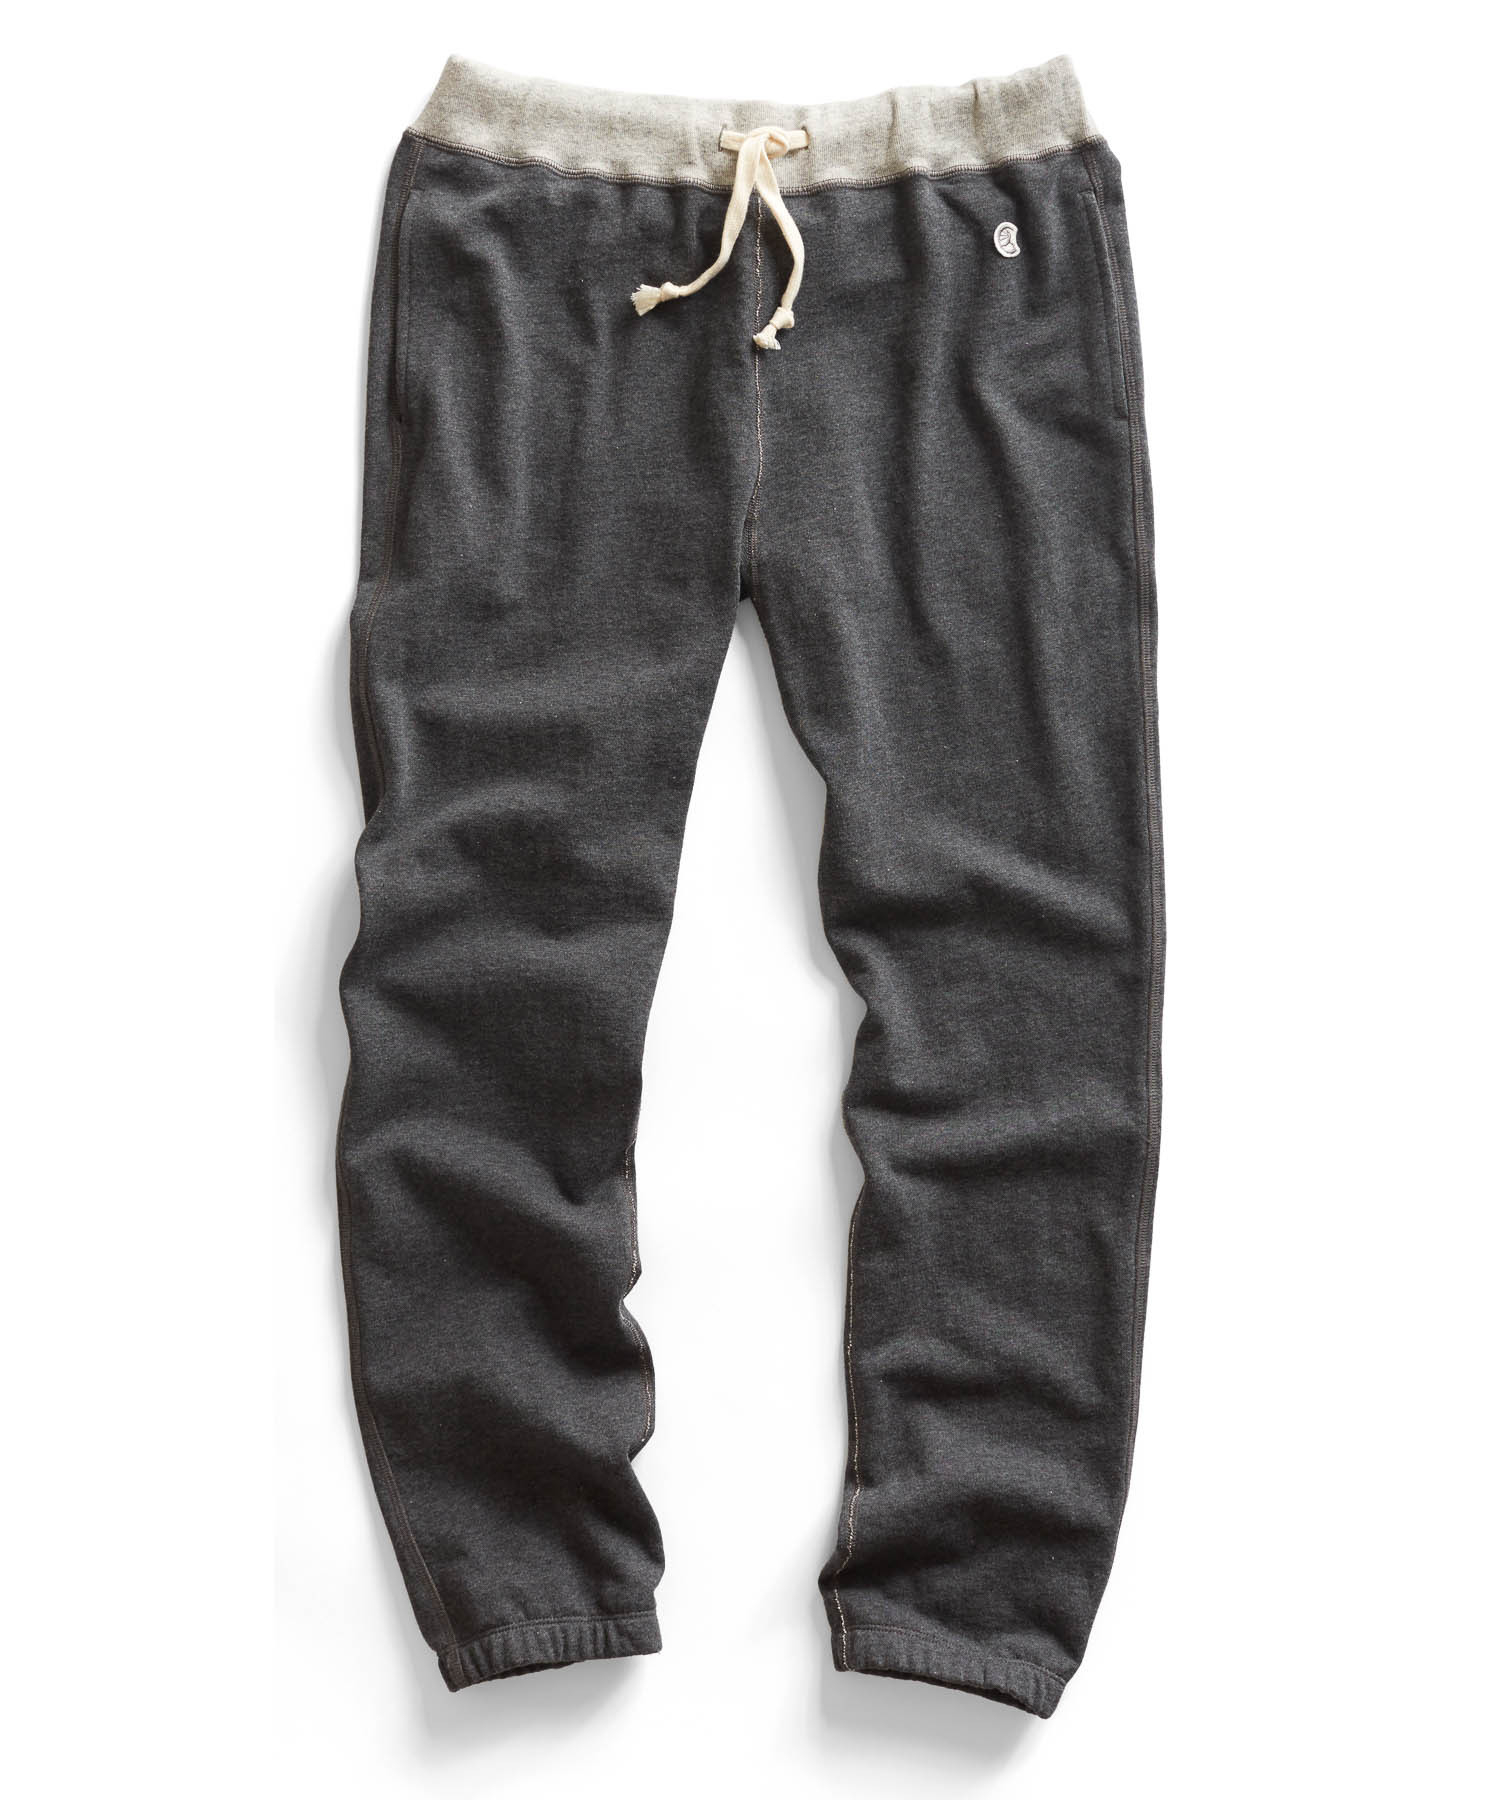 Todd Snyder Classic Sweatpant In Black Pepper In Gray For